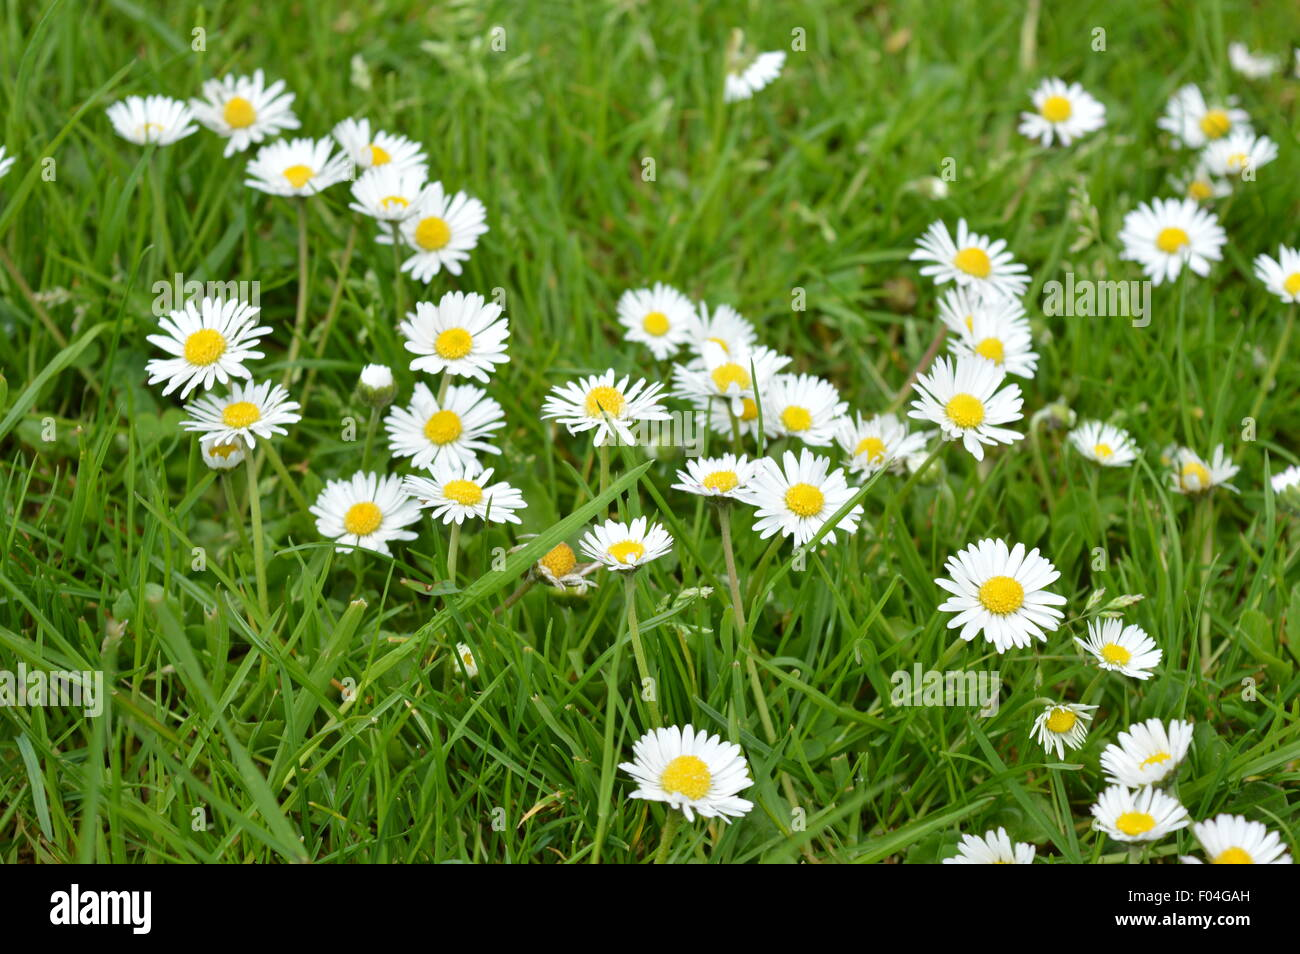 Nice and beautiful small white flowers on the grass stock photo nice and beautiful small white flowers on the grass mightylinksfo